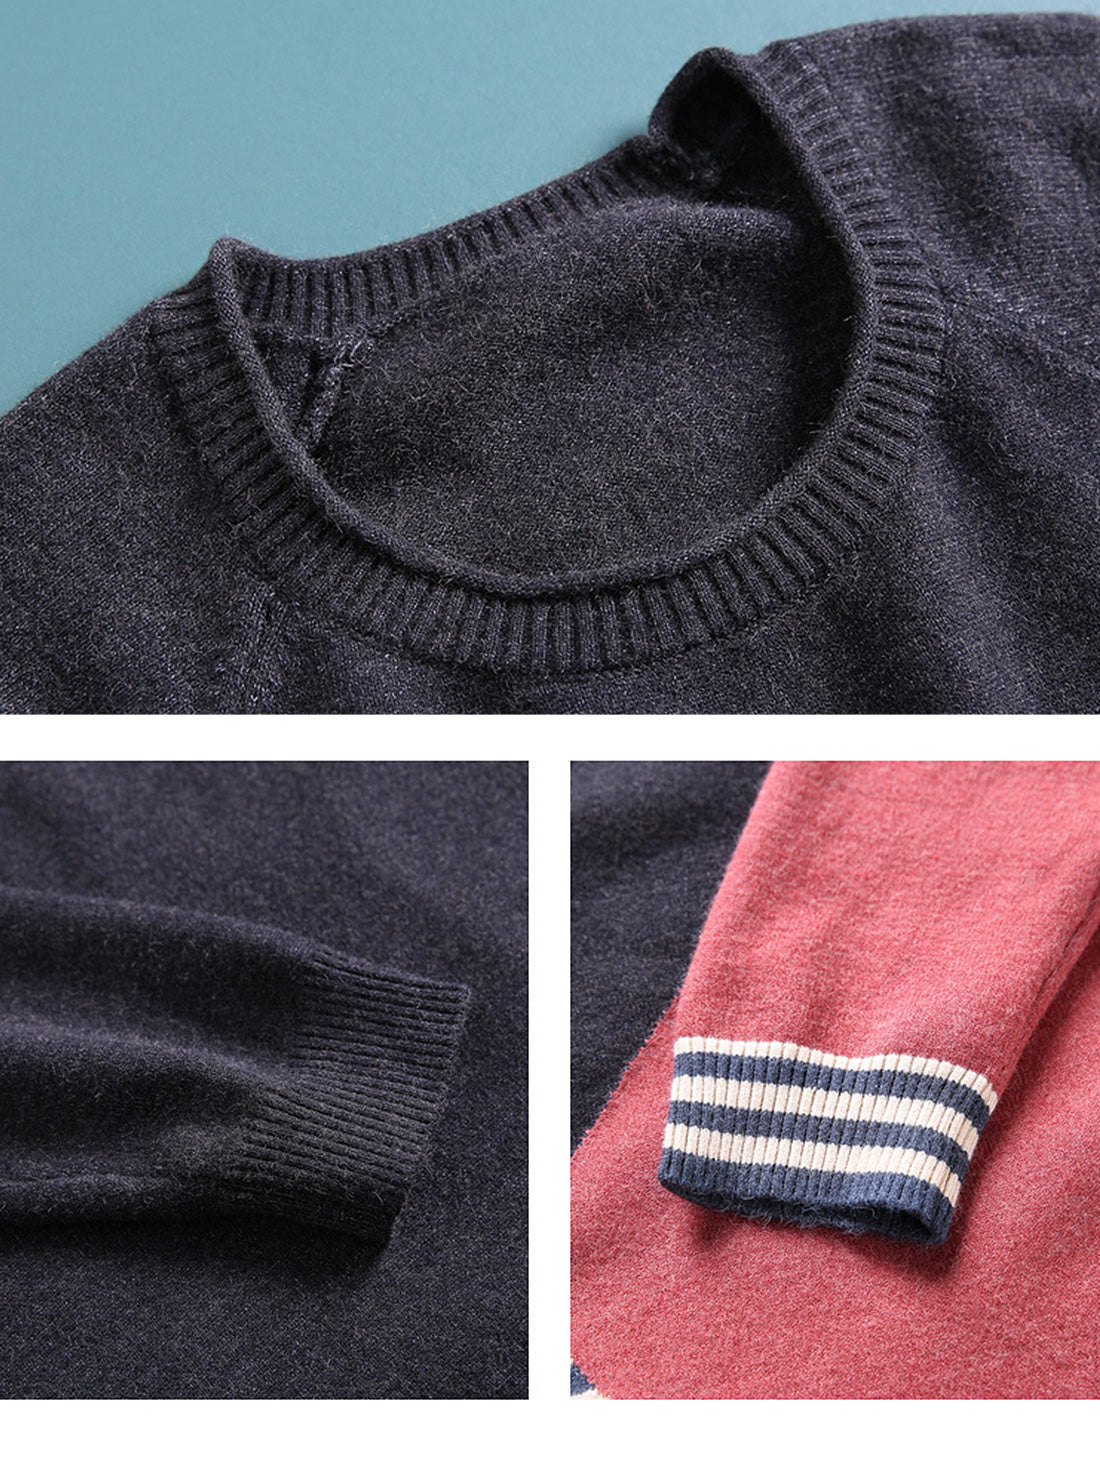 Color Block Striped Knitted Sweater Details 1